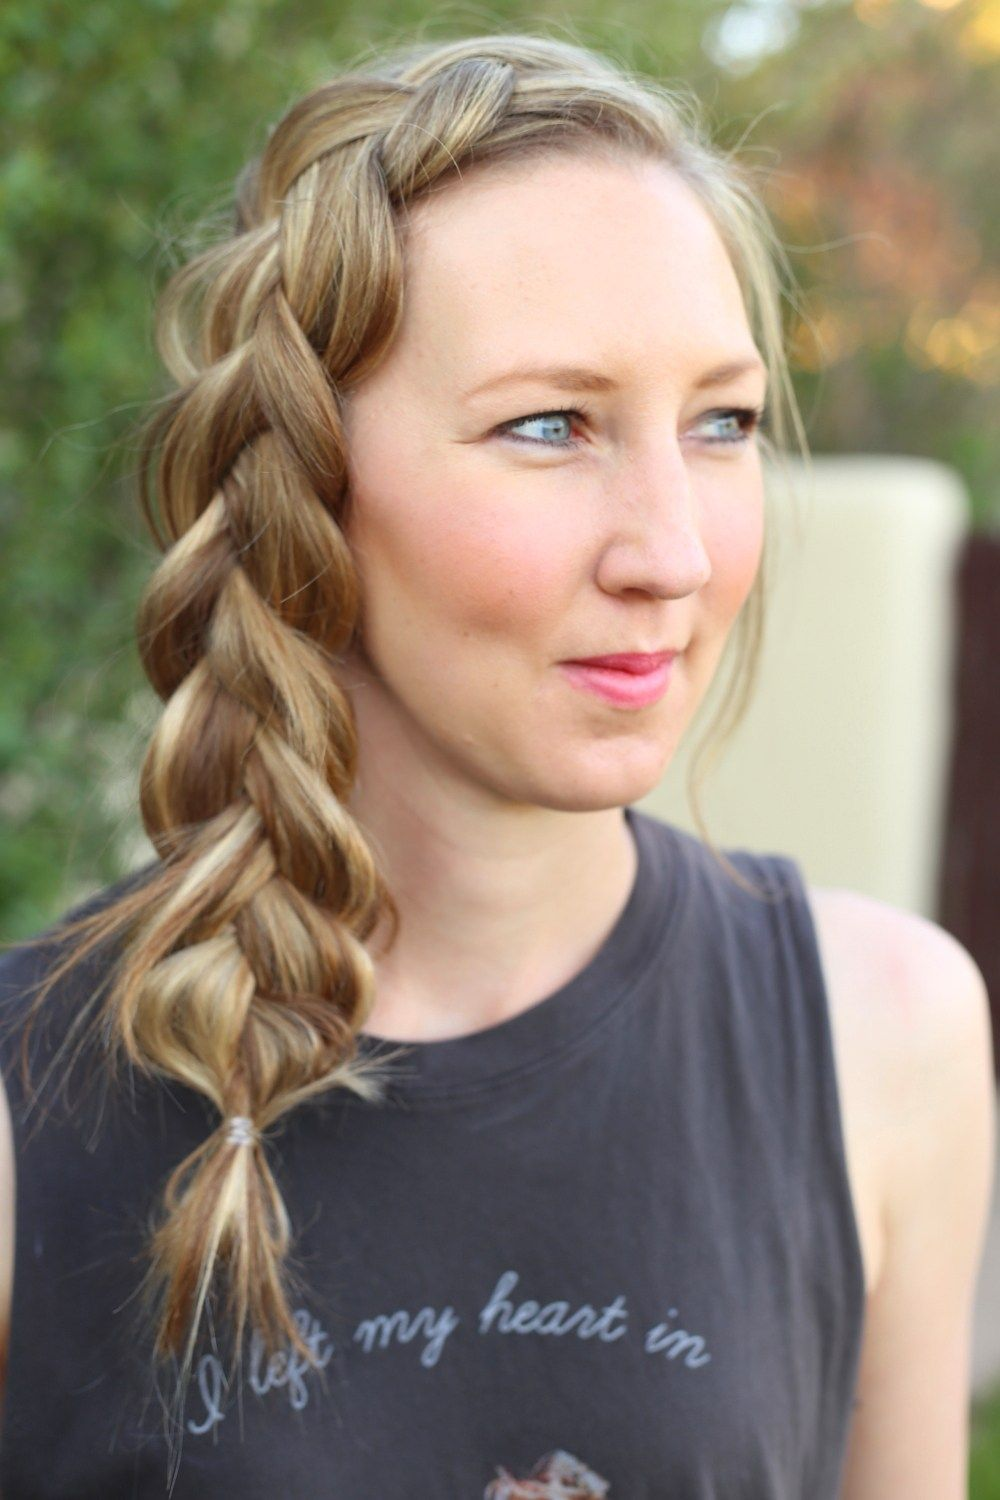 Hairstyles quick hairstyle ideas for moms hair pinterest